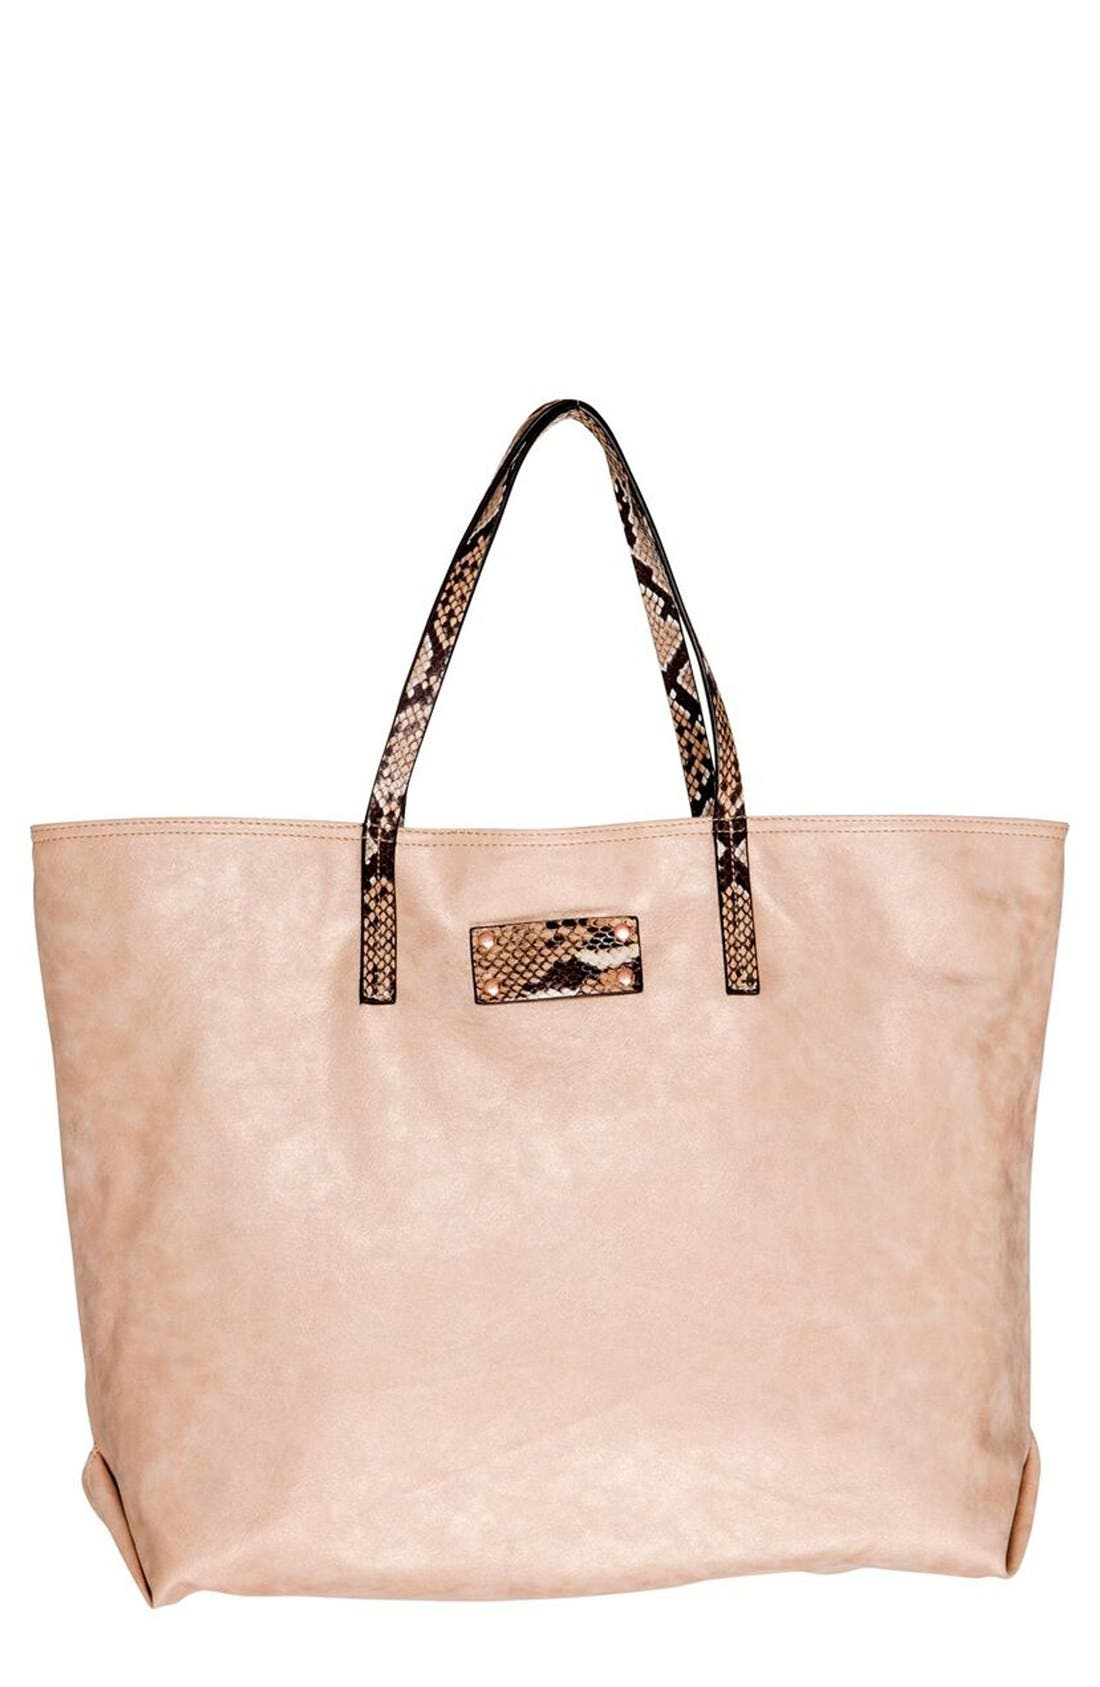 Sun Valley Vegan Leather Tote,                             Main thumbnail 1, color,                             650